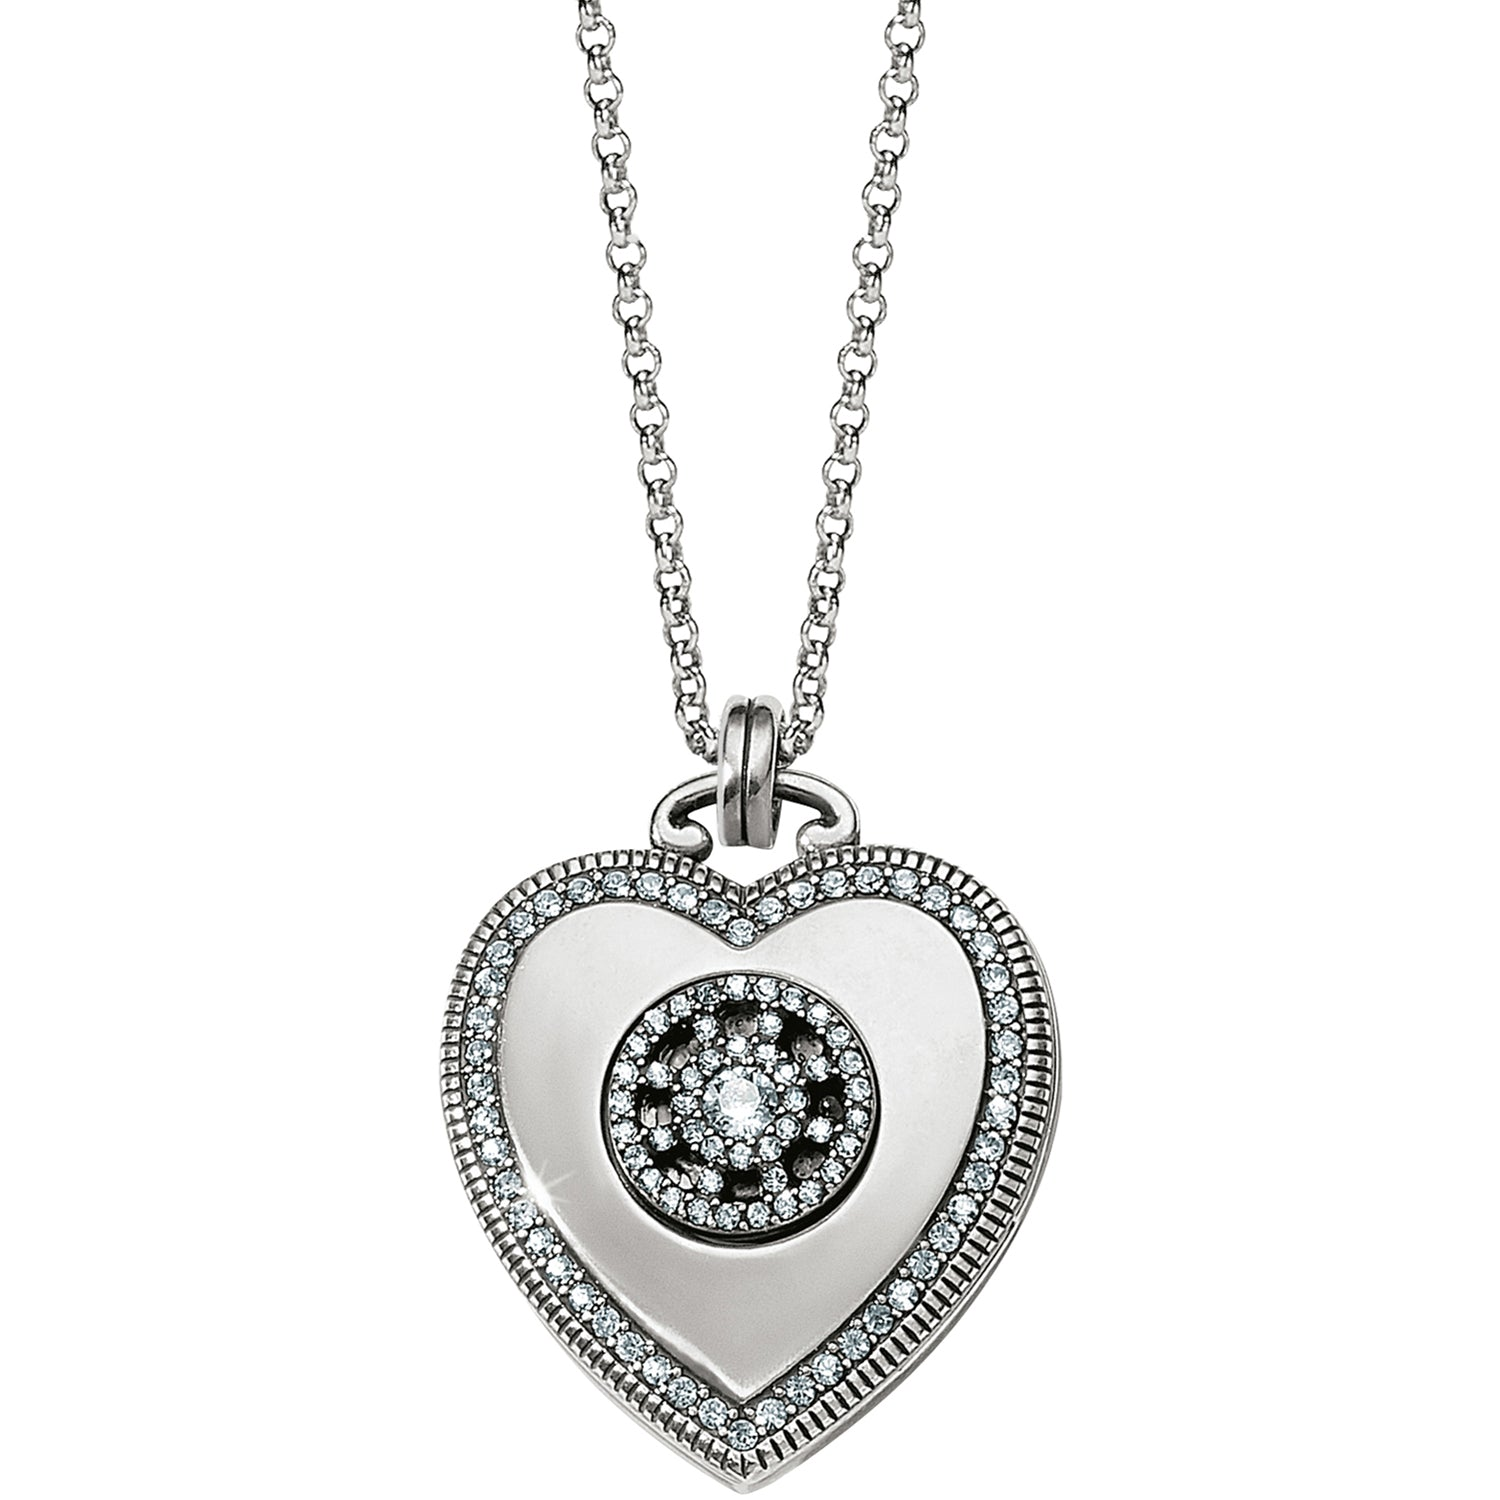 Illumina Small Heart Locket Necklace